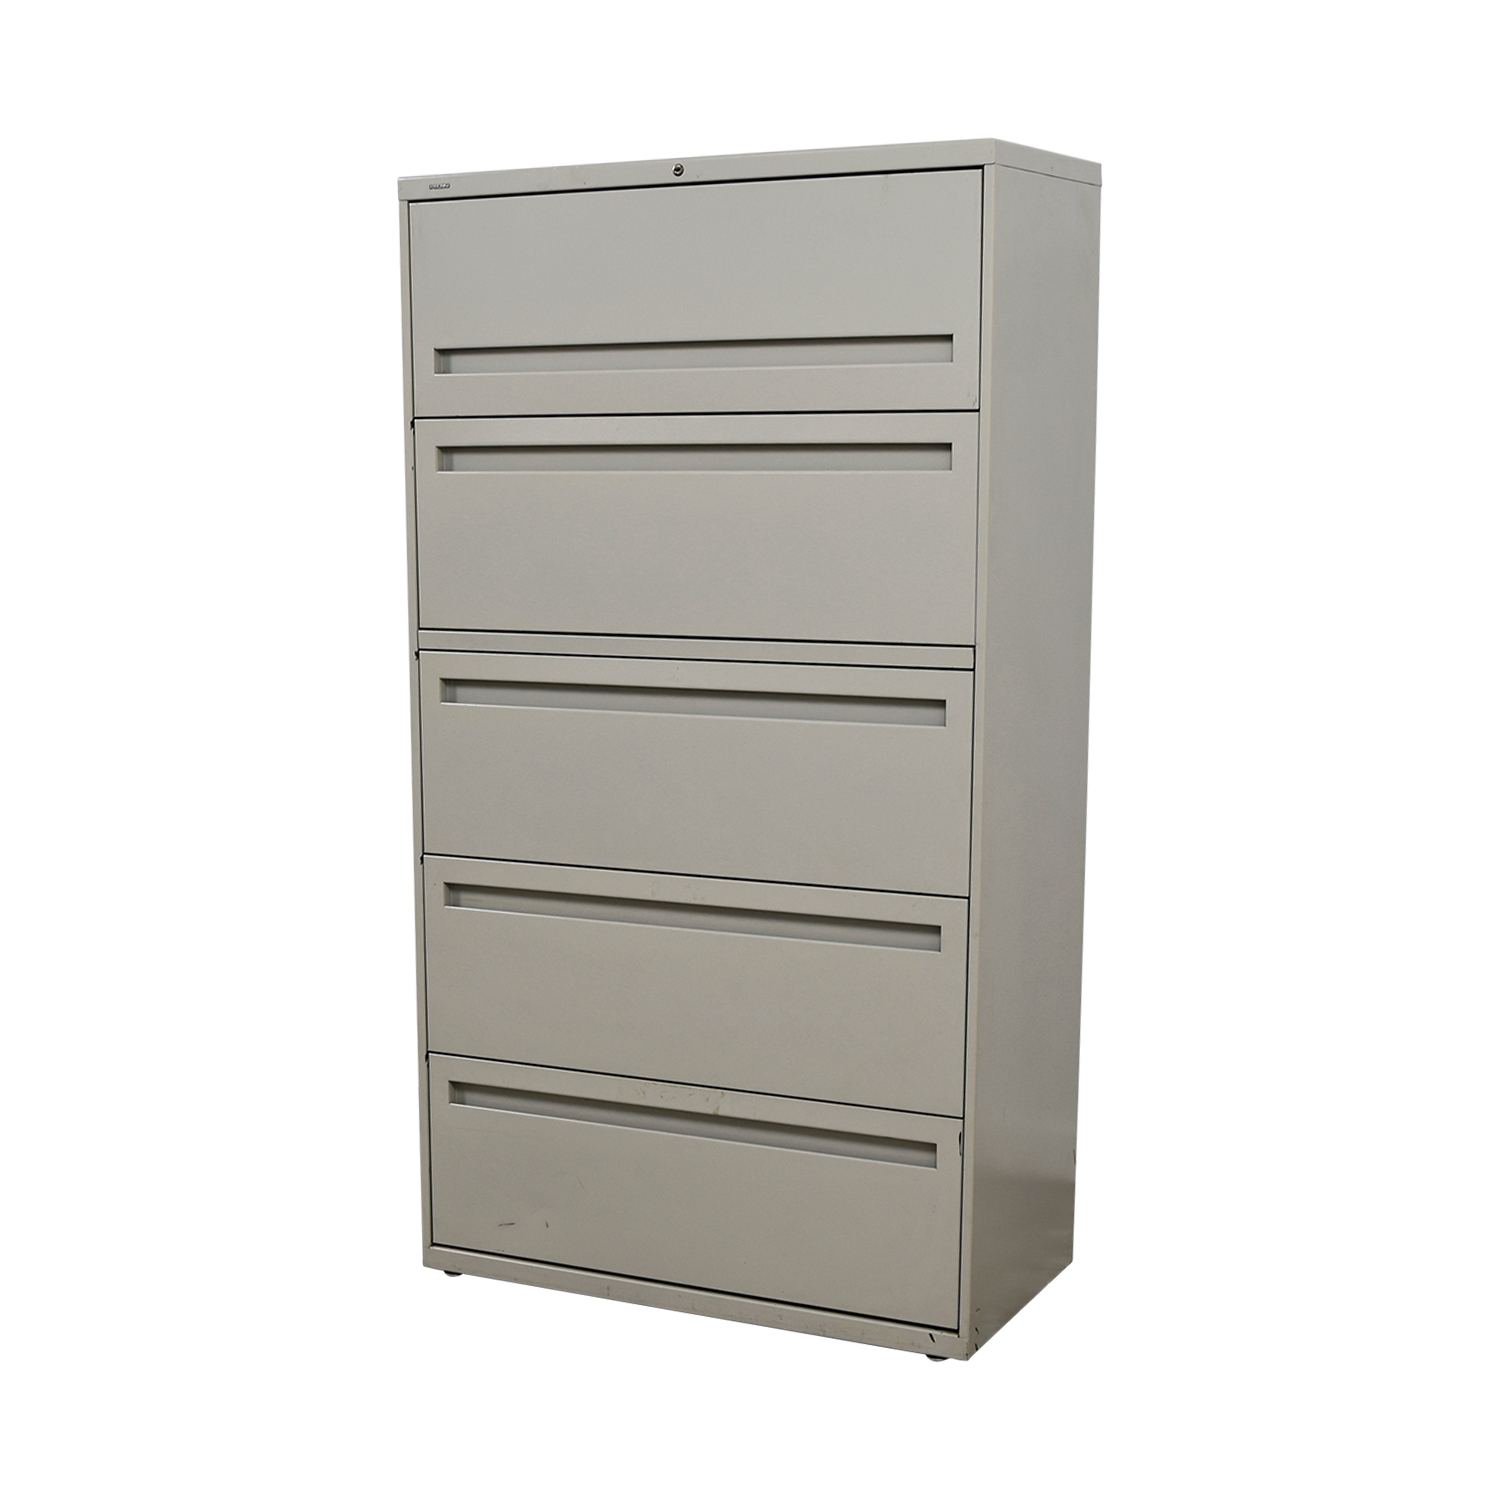 ... Hon White Five Drawer Lateral File Cabinet / Storage ...  sc 1 st  Furnishare : hon storage cabinets  - Aquiesqueretaro.Com